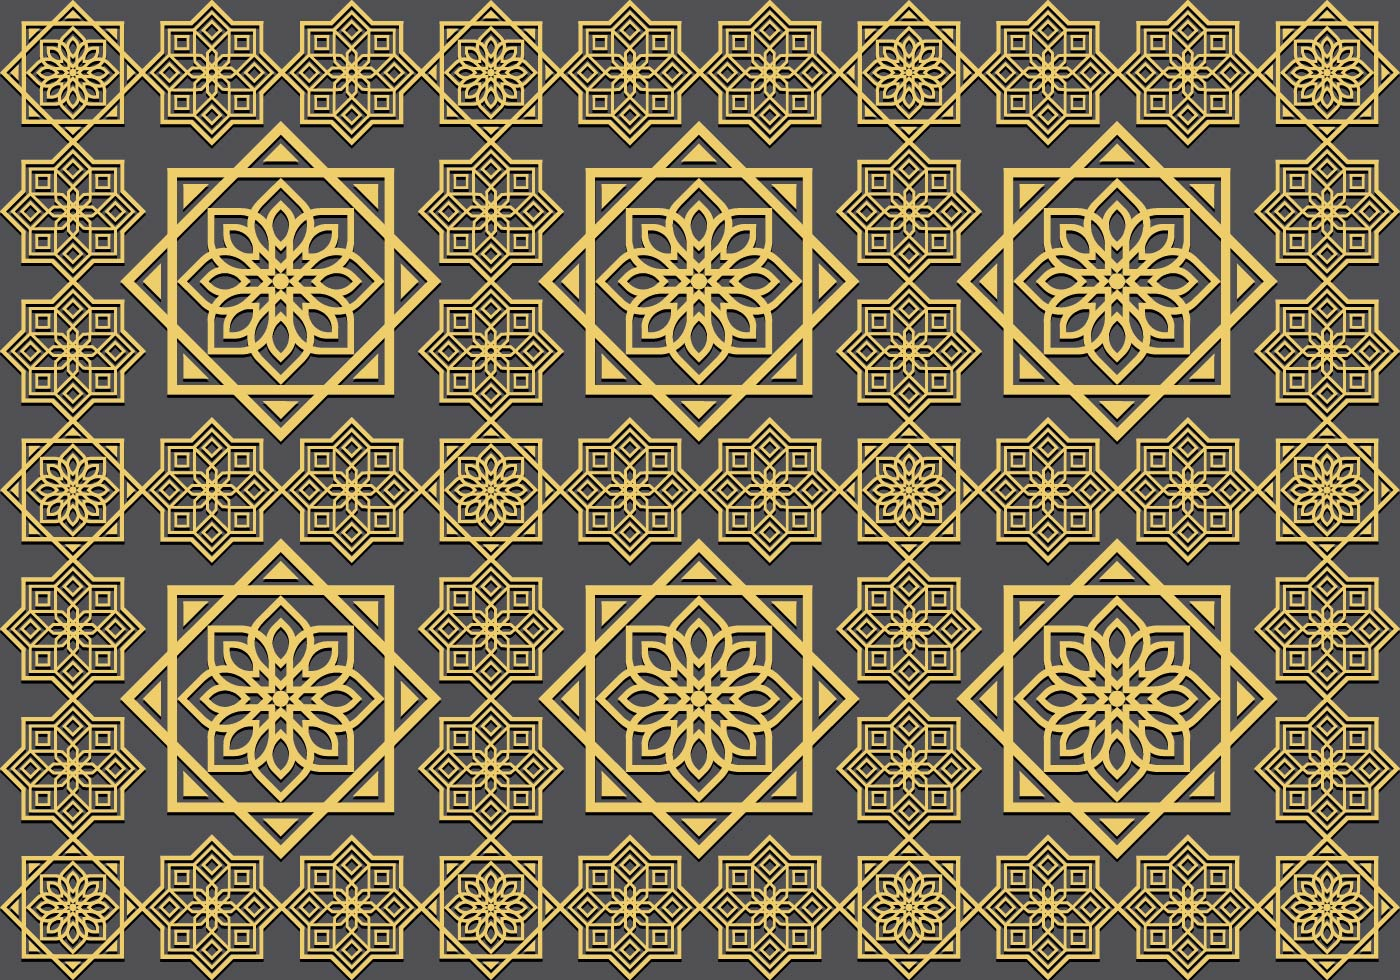 Islamic Ornament Seamless Pattern Download Free Vector